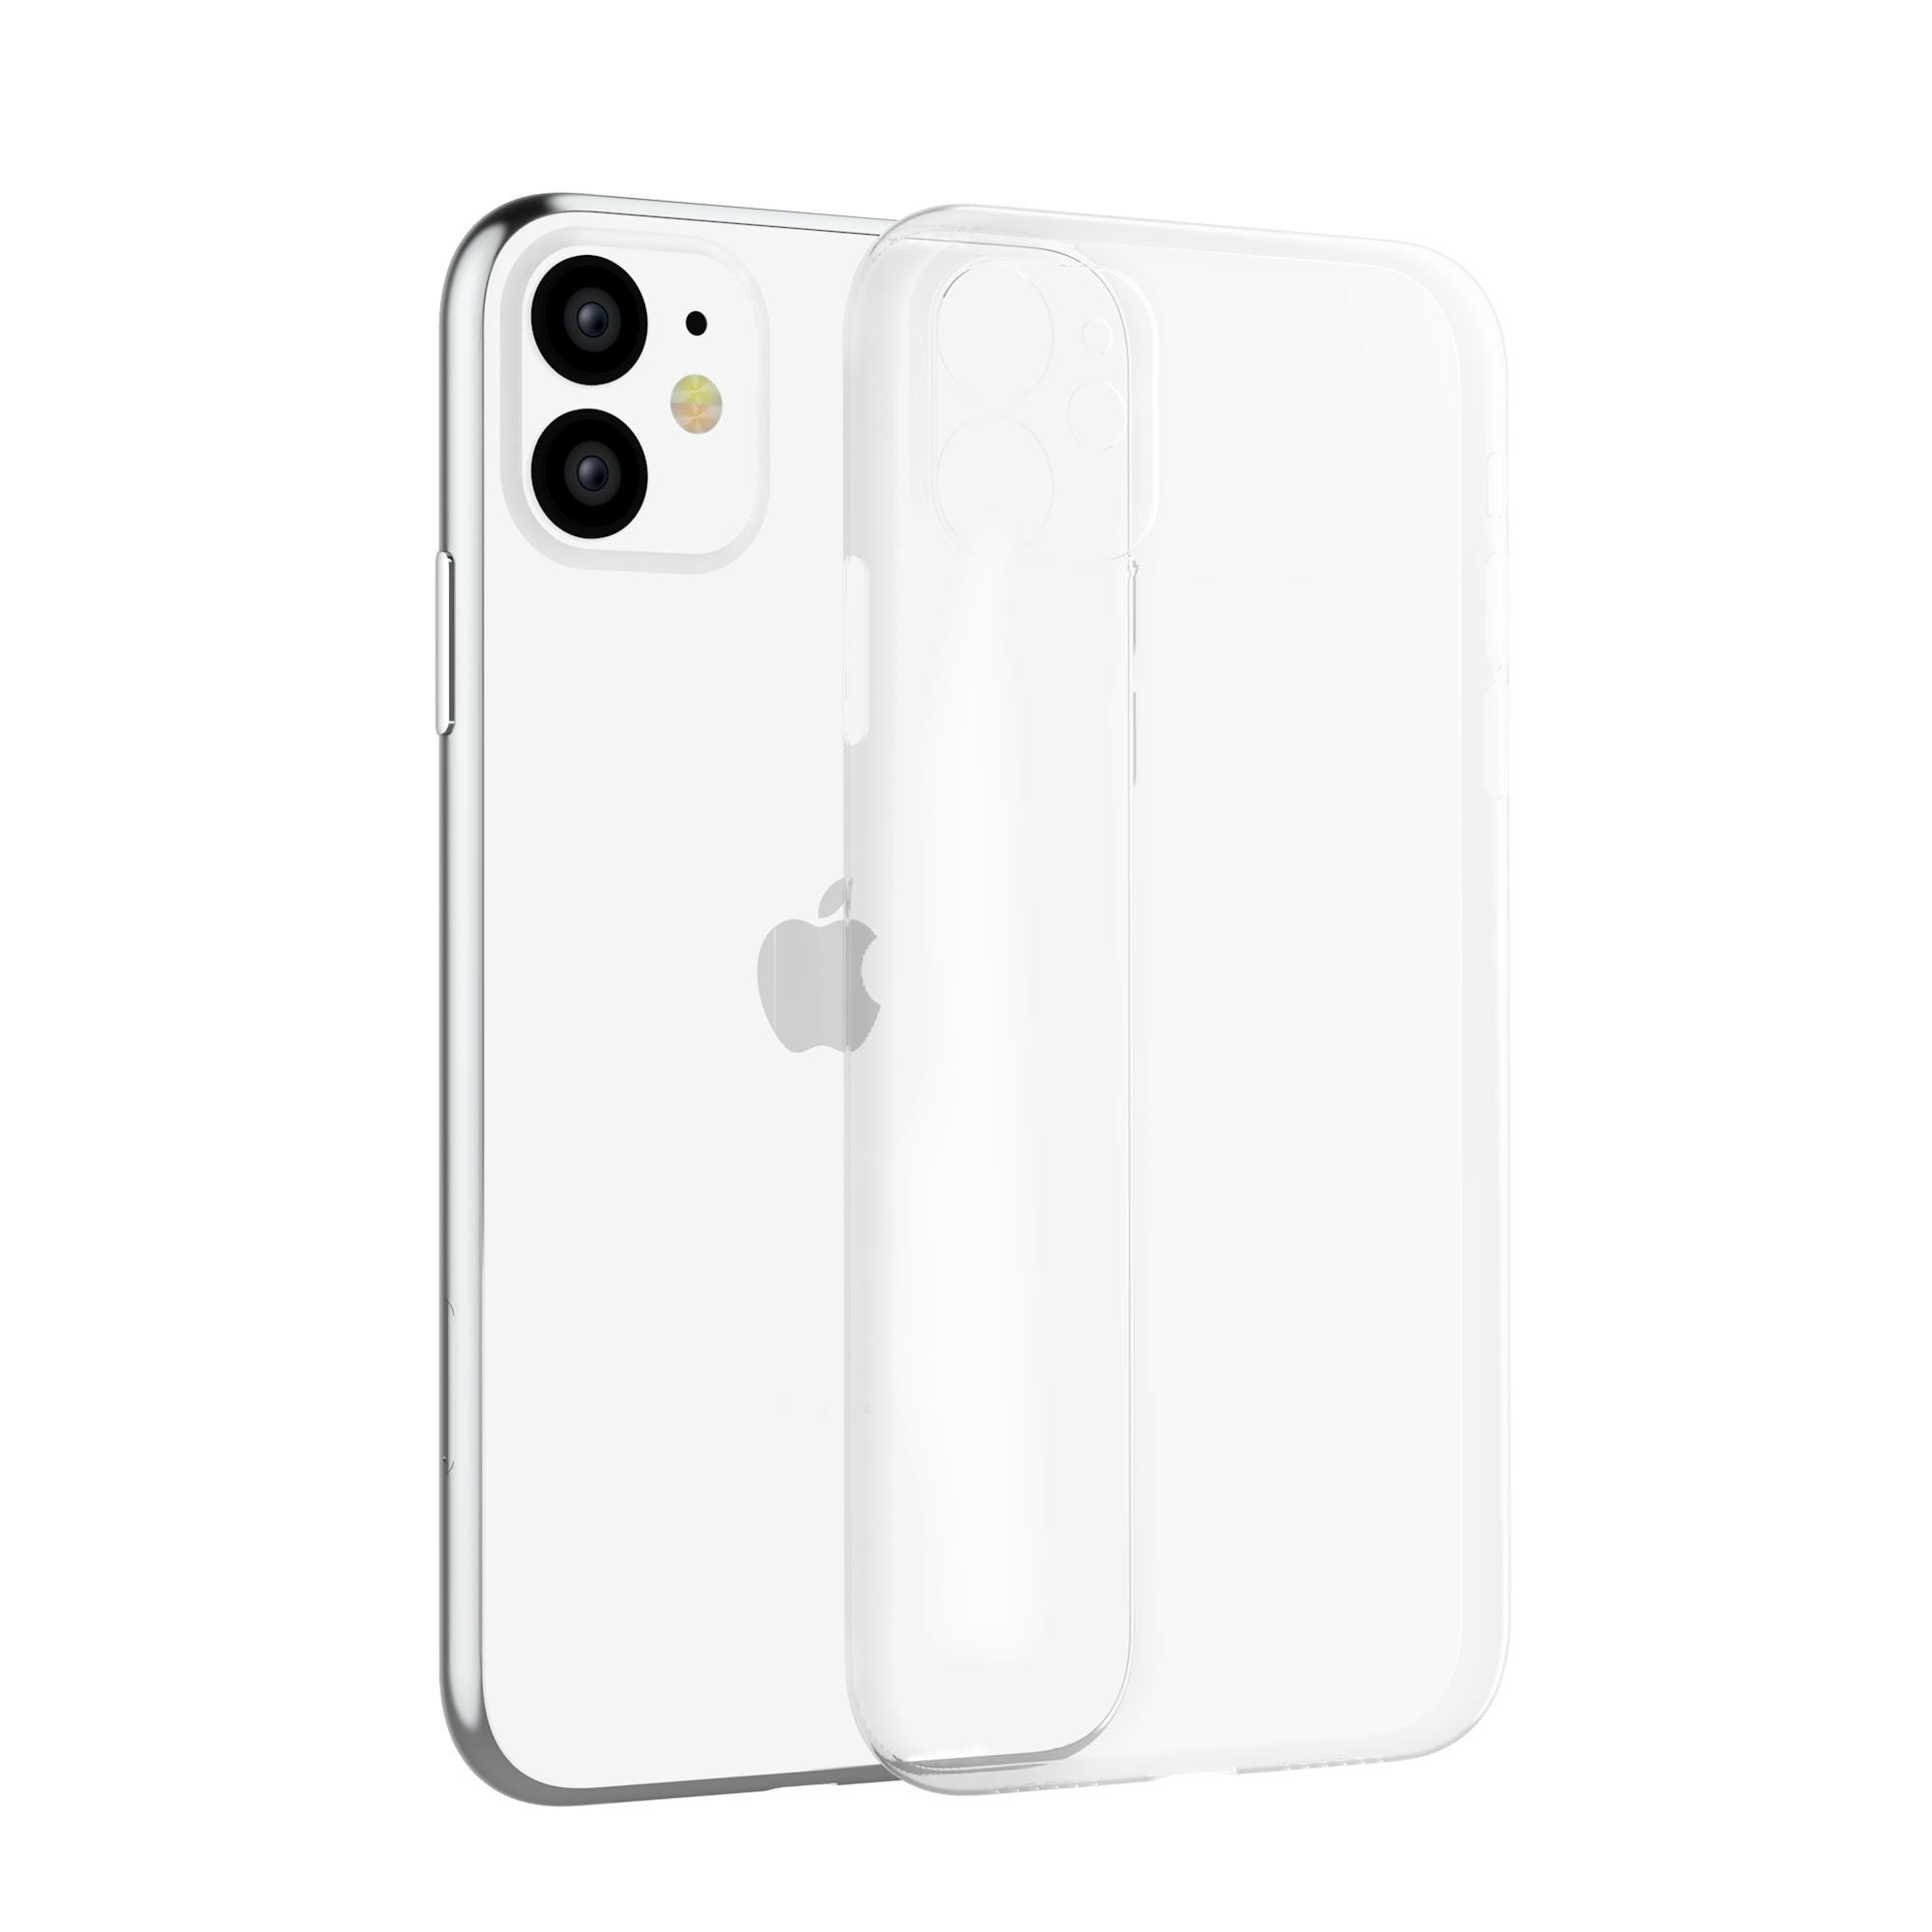 Crystal transparent cell phone accessories cover for apple iPhone 11 clear mobile phone case for iPhone 11 pro clear case